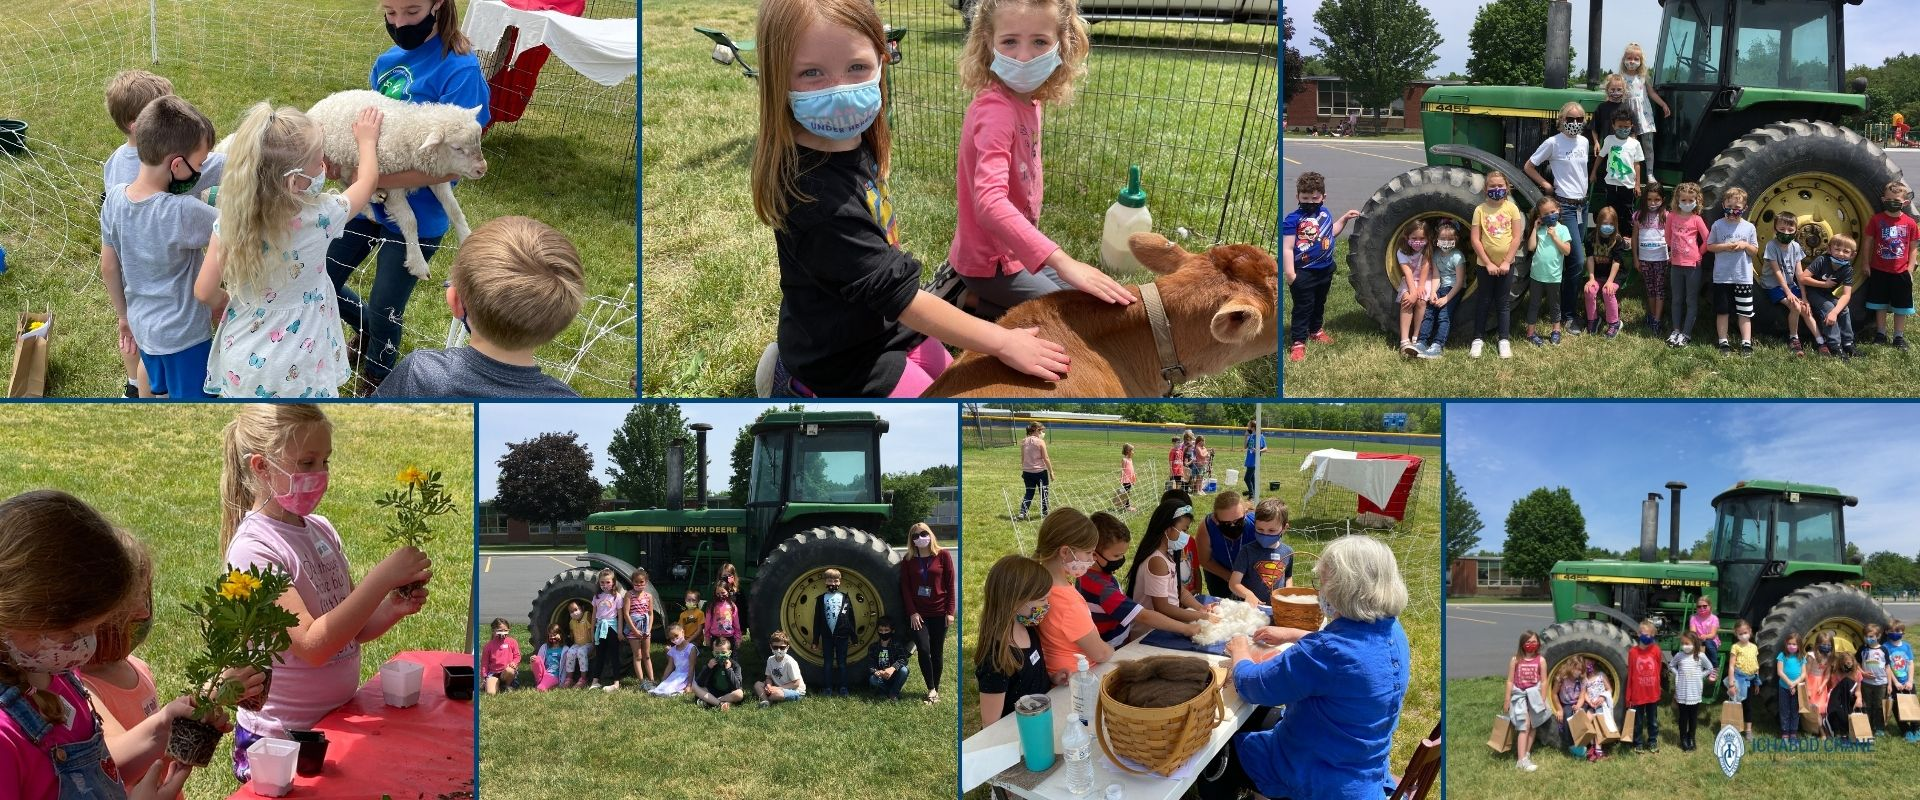 AG Day at the Primary School